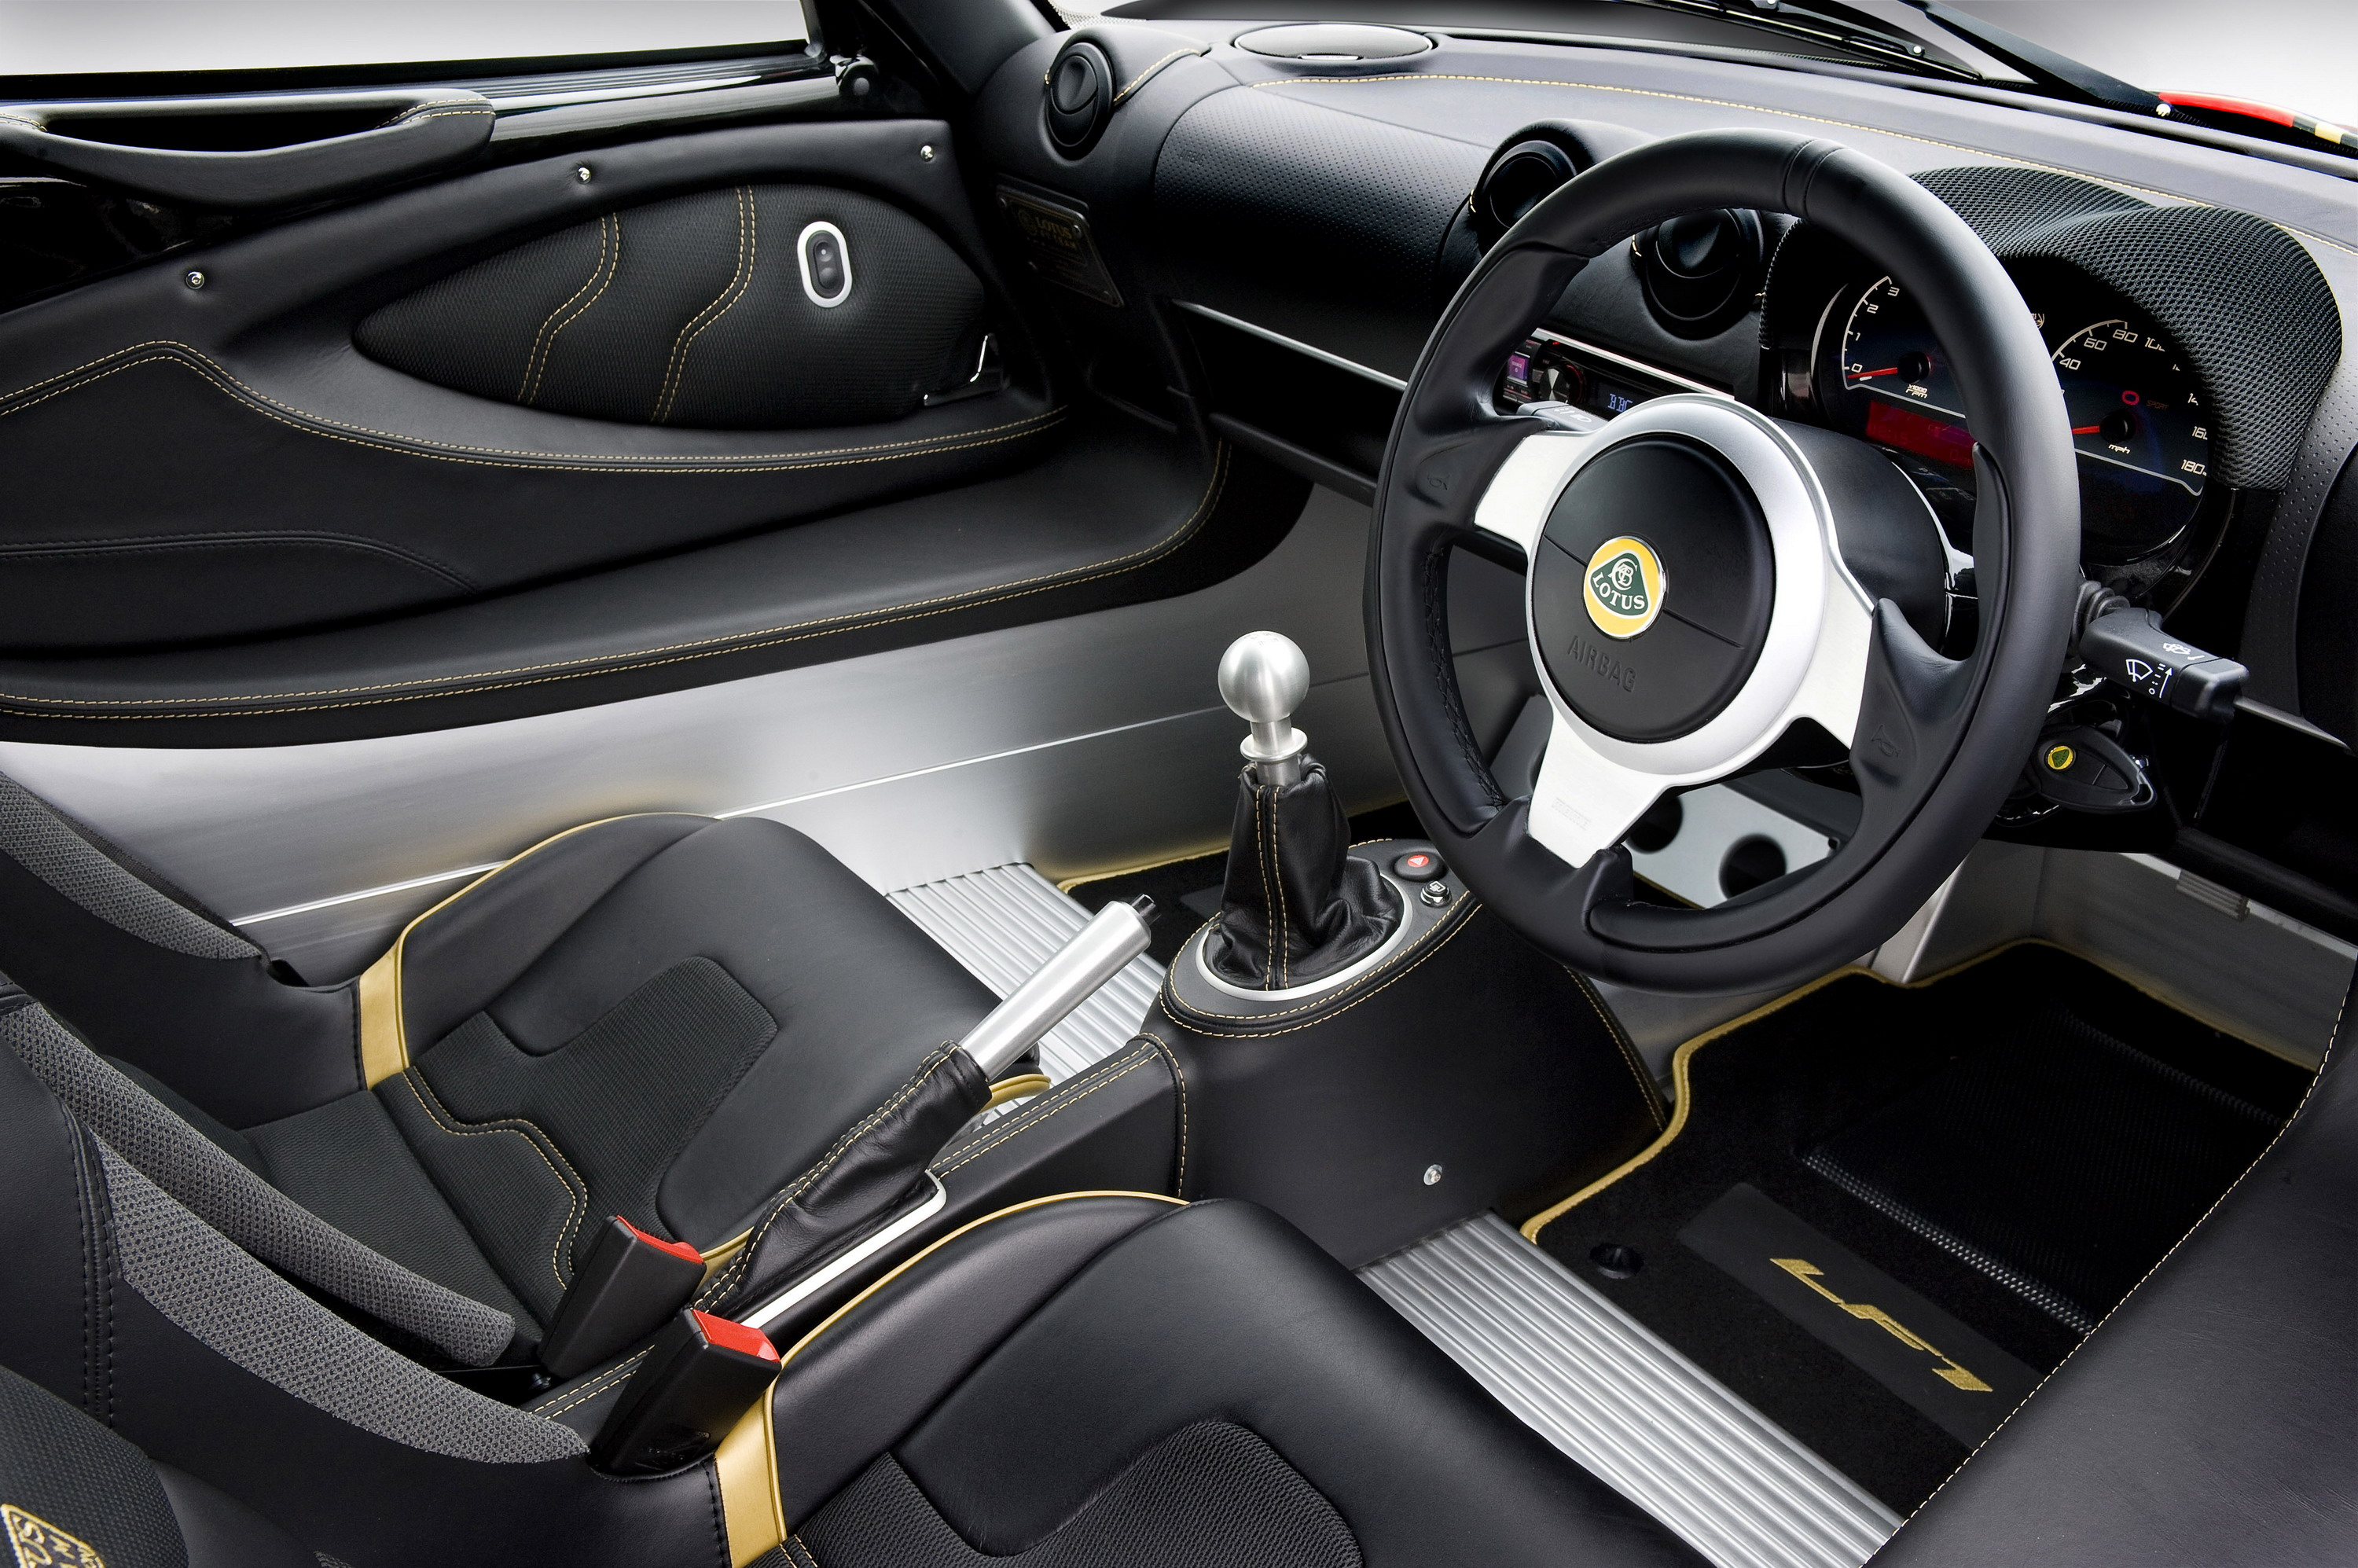 2014 Lotus Exige LF1 Limited Edition | Top Speed